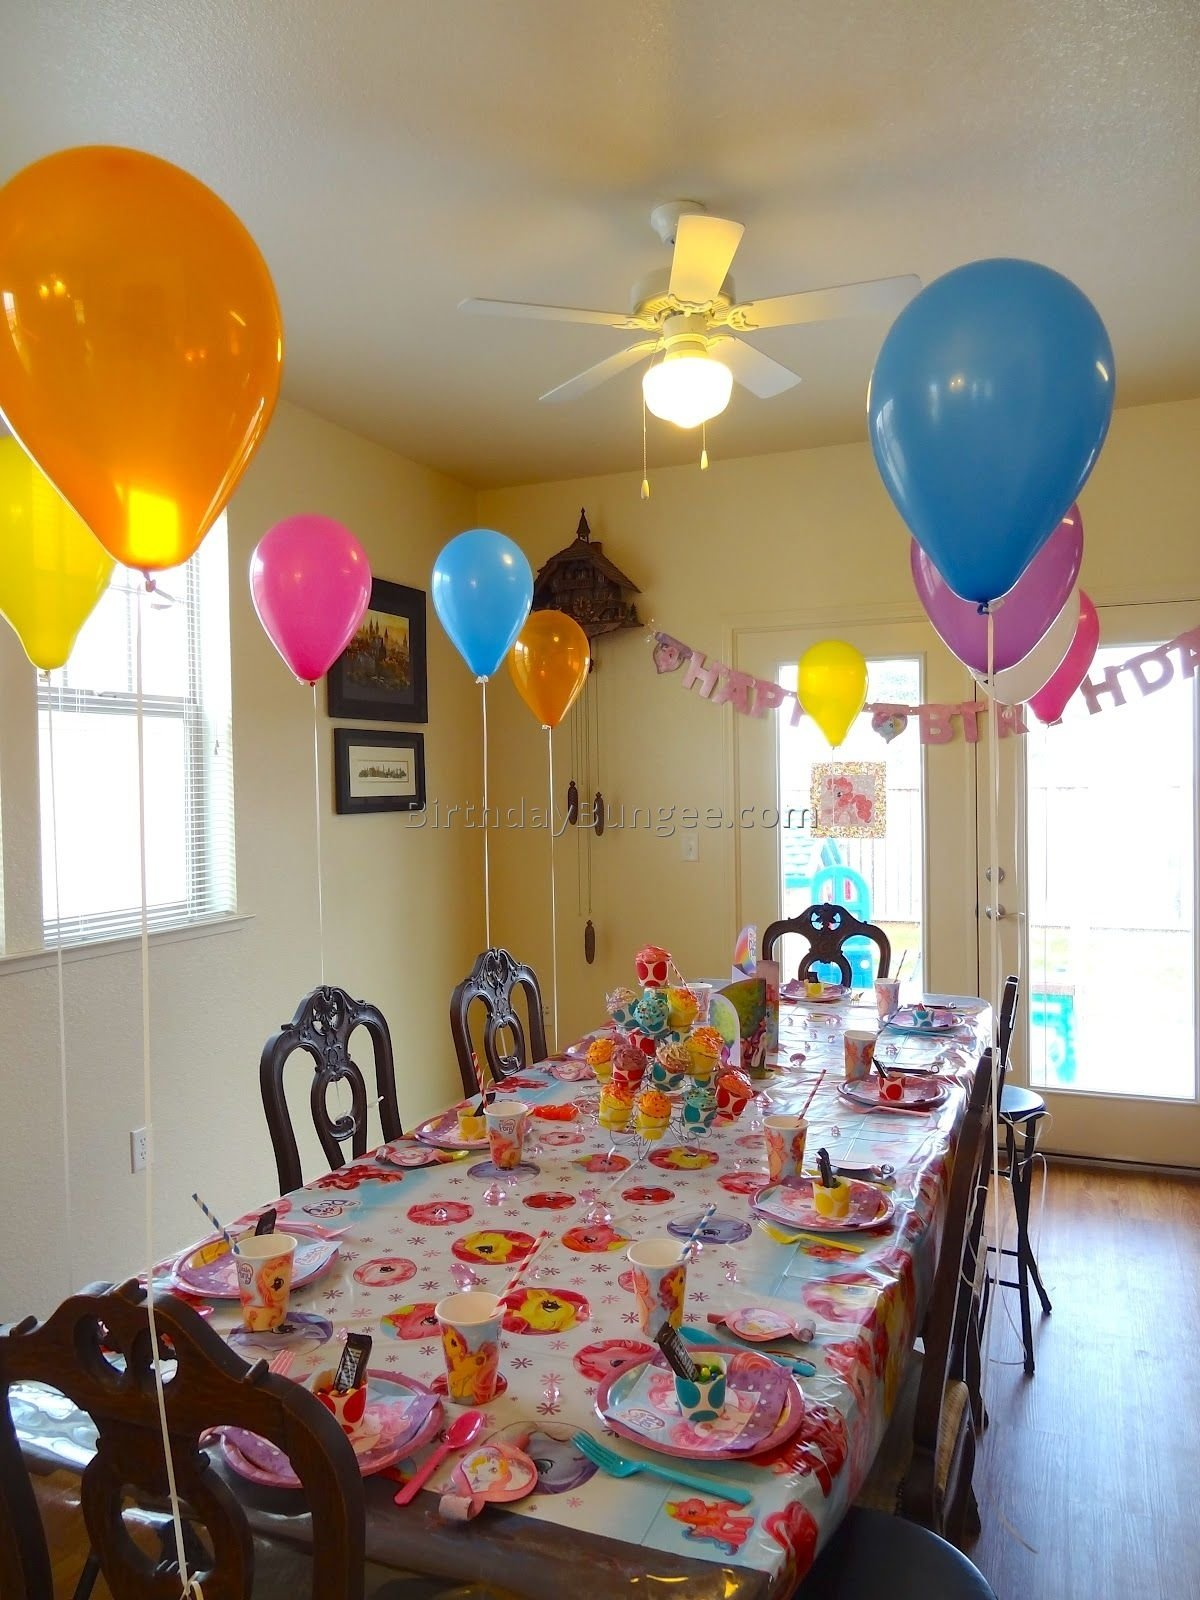 10 Wonderful Ideas For 4 Year Old Birthday Party Themes 3